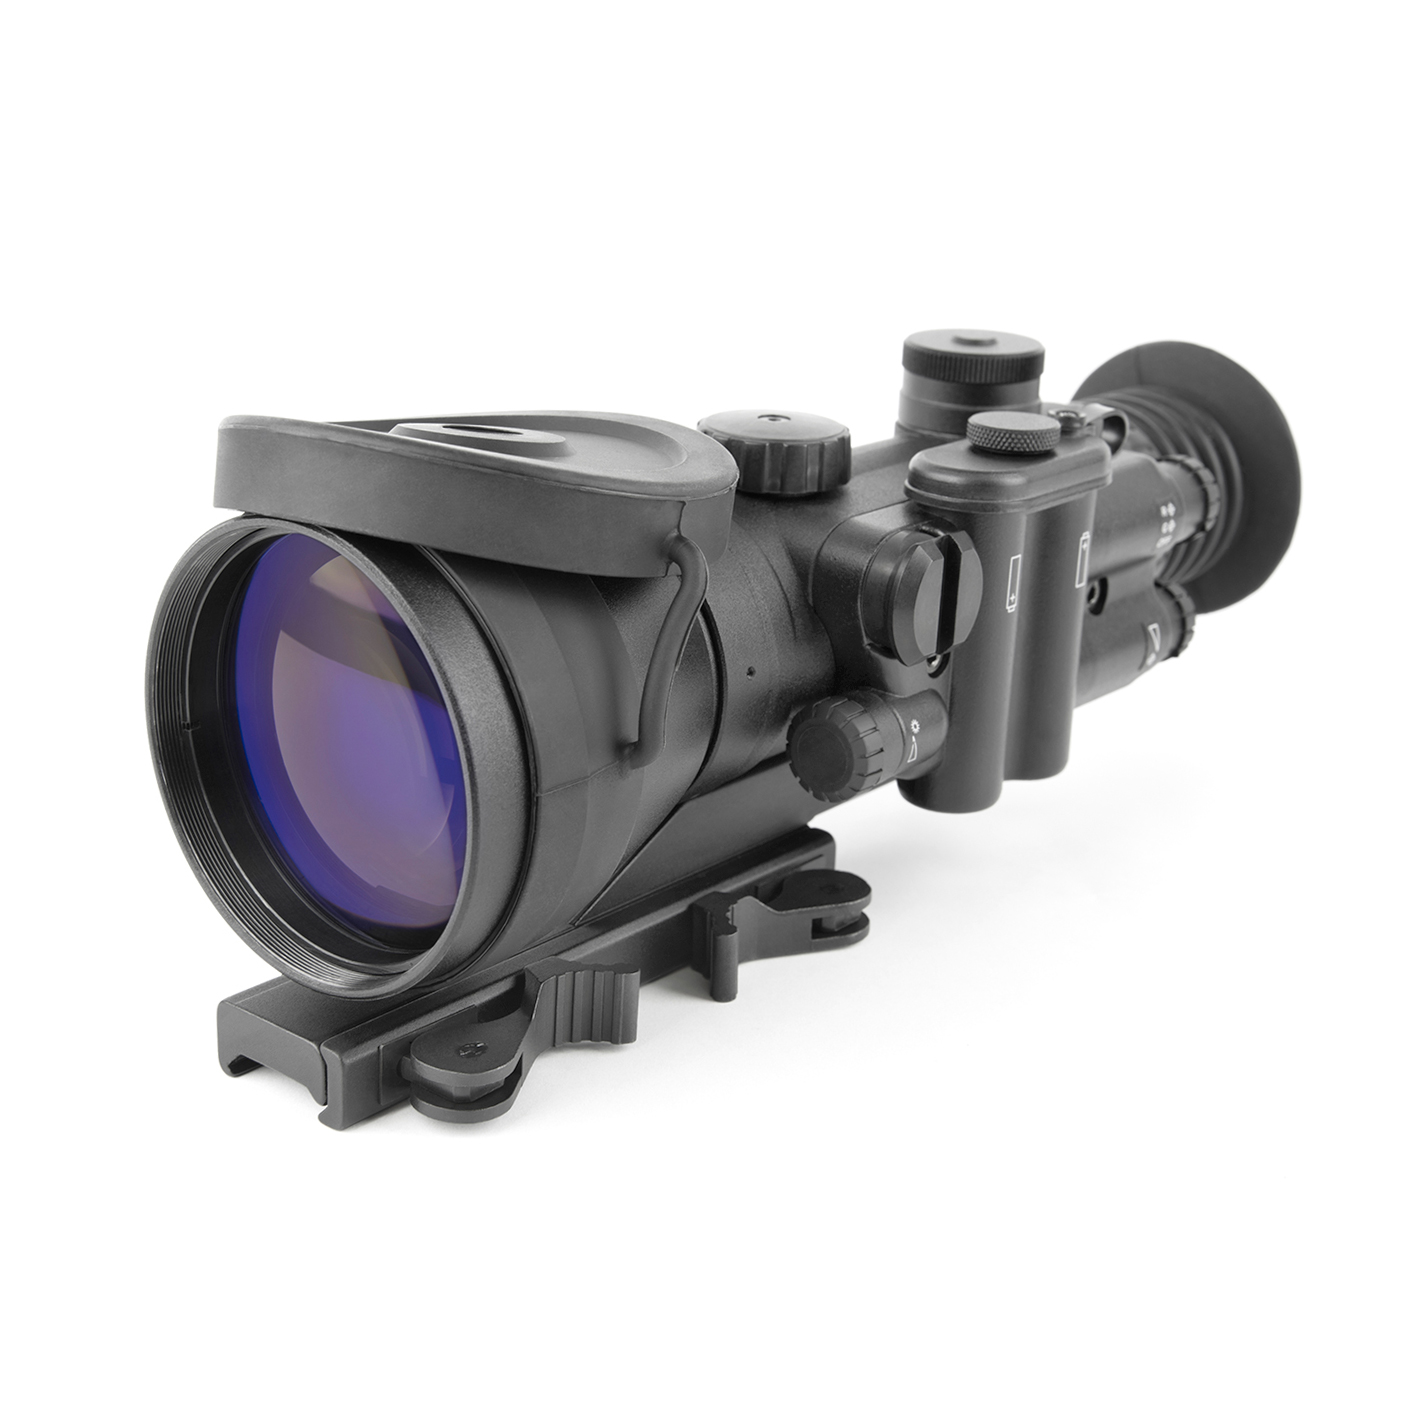 NVD-740 Night Vision Weapon Sight